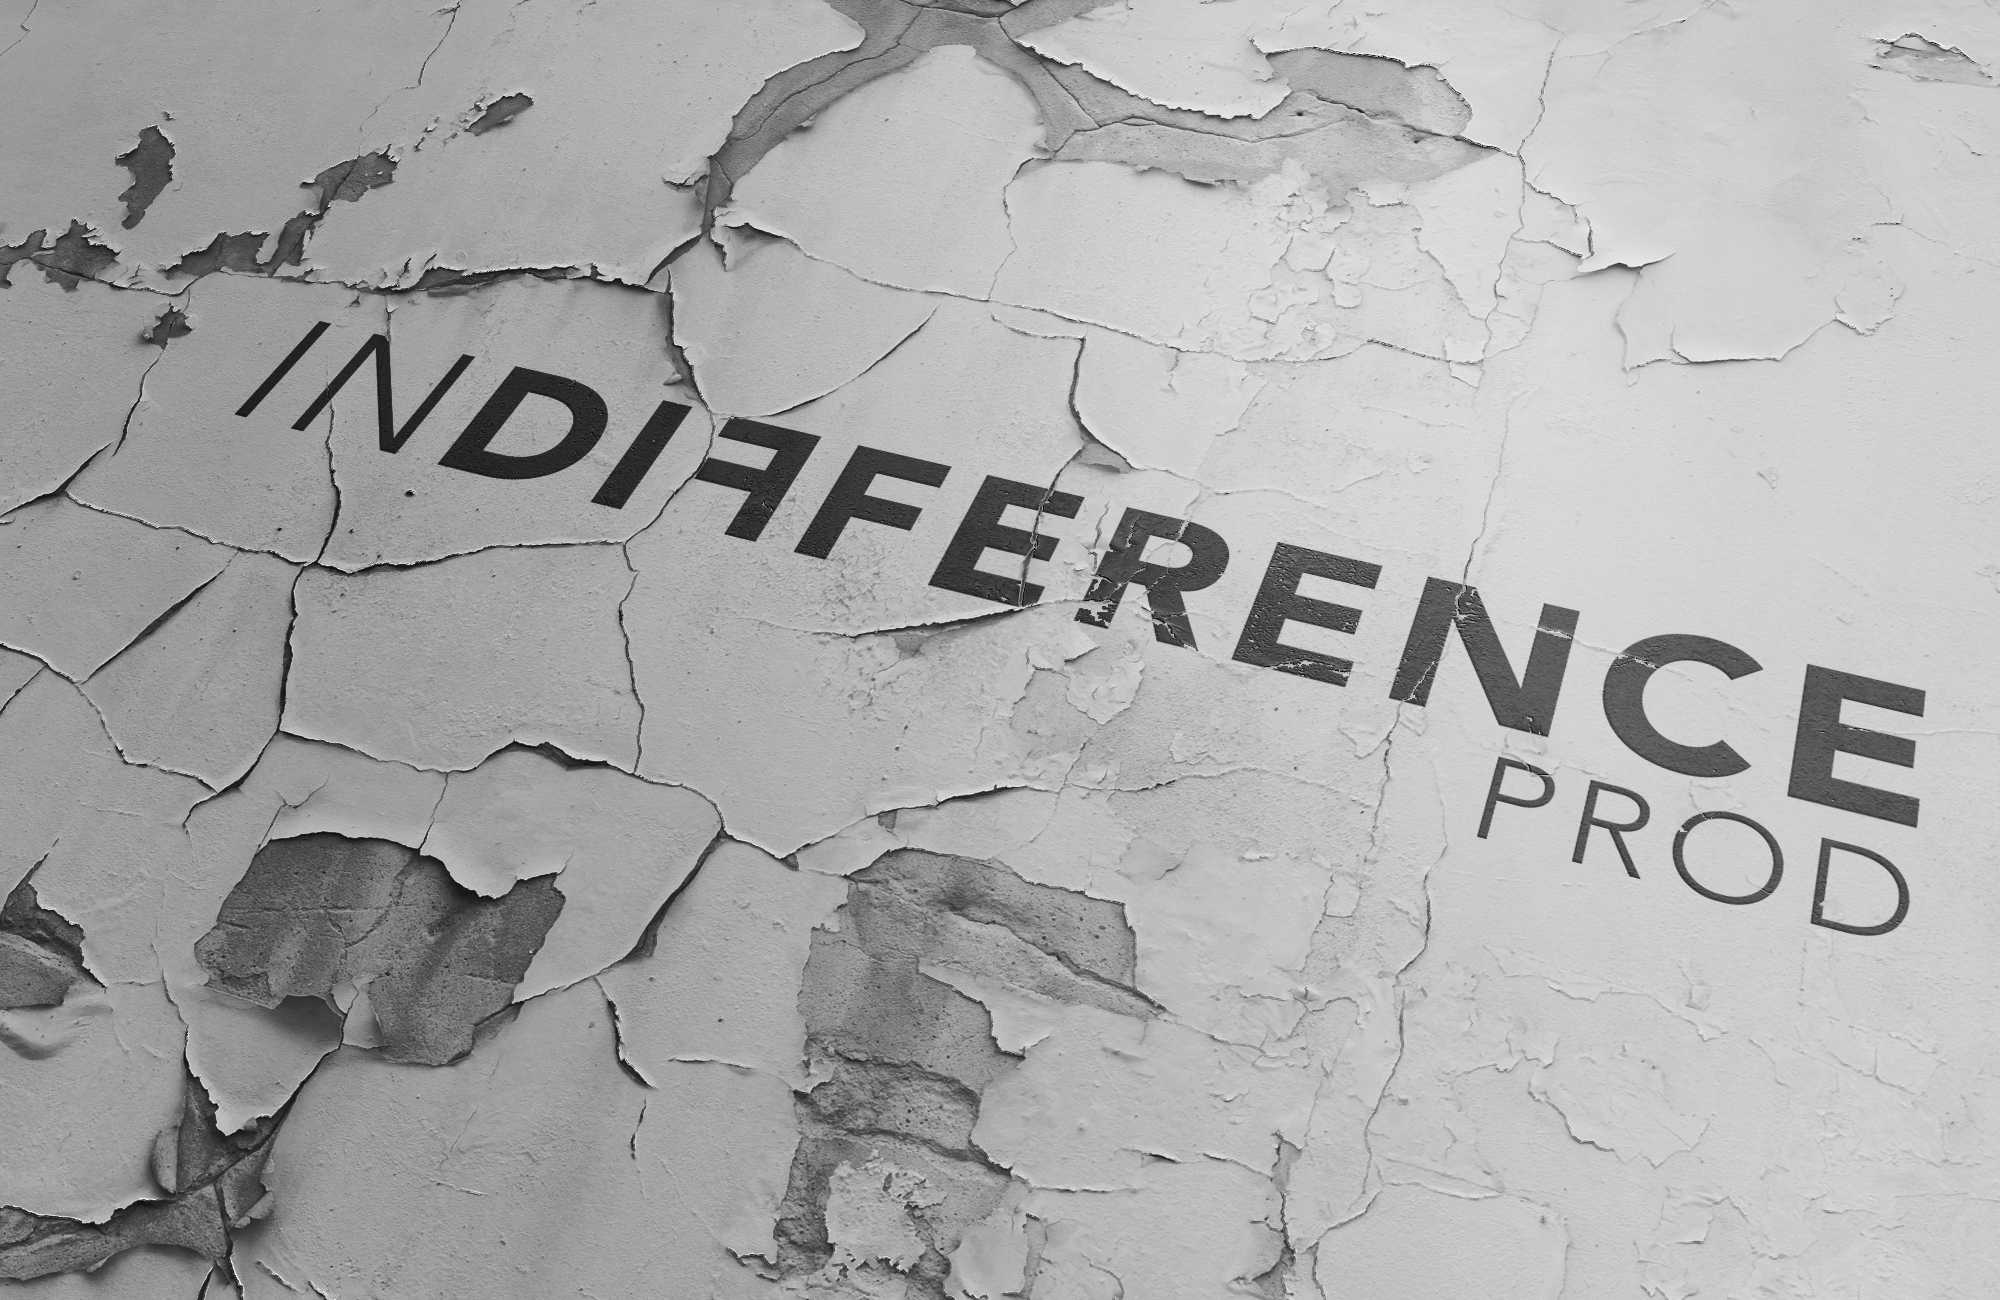 Indifference Prod